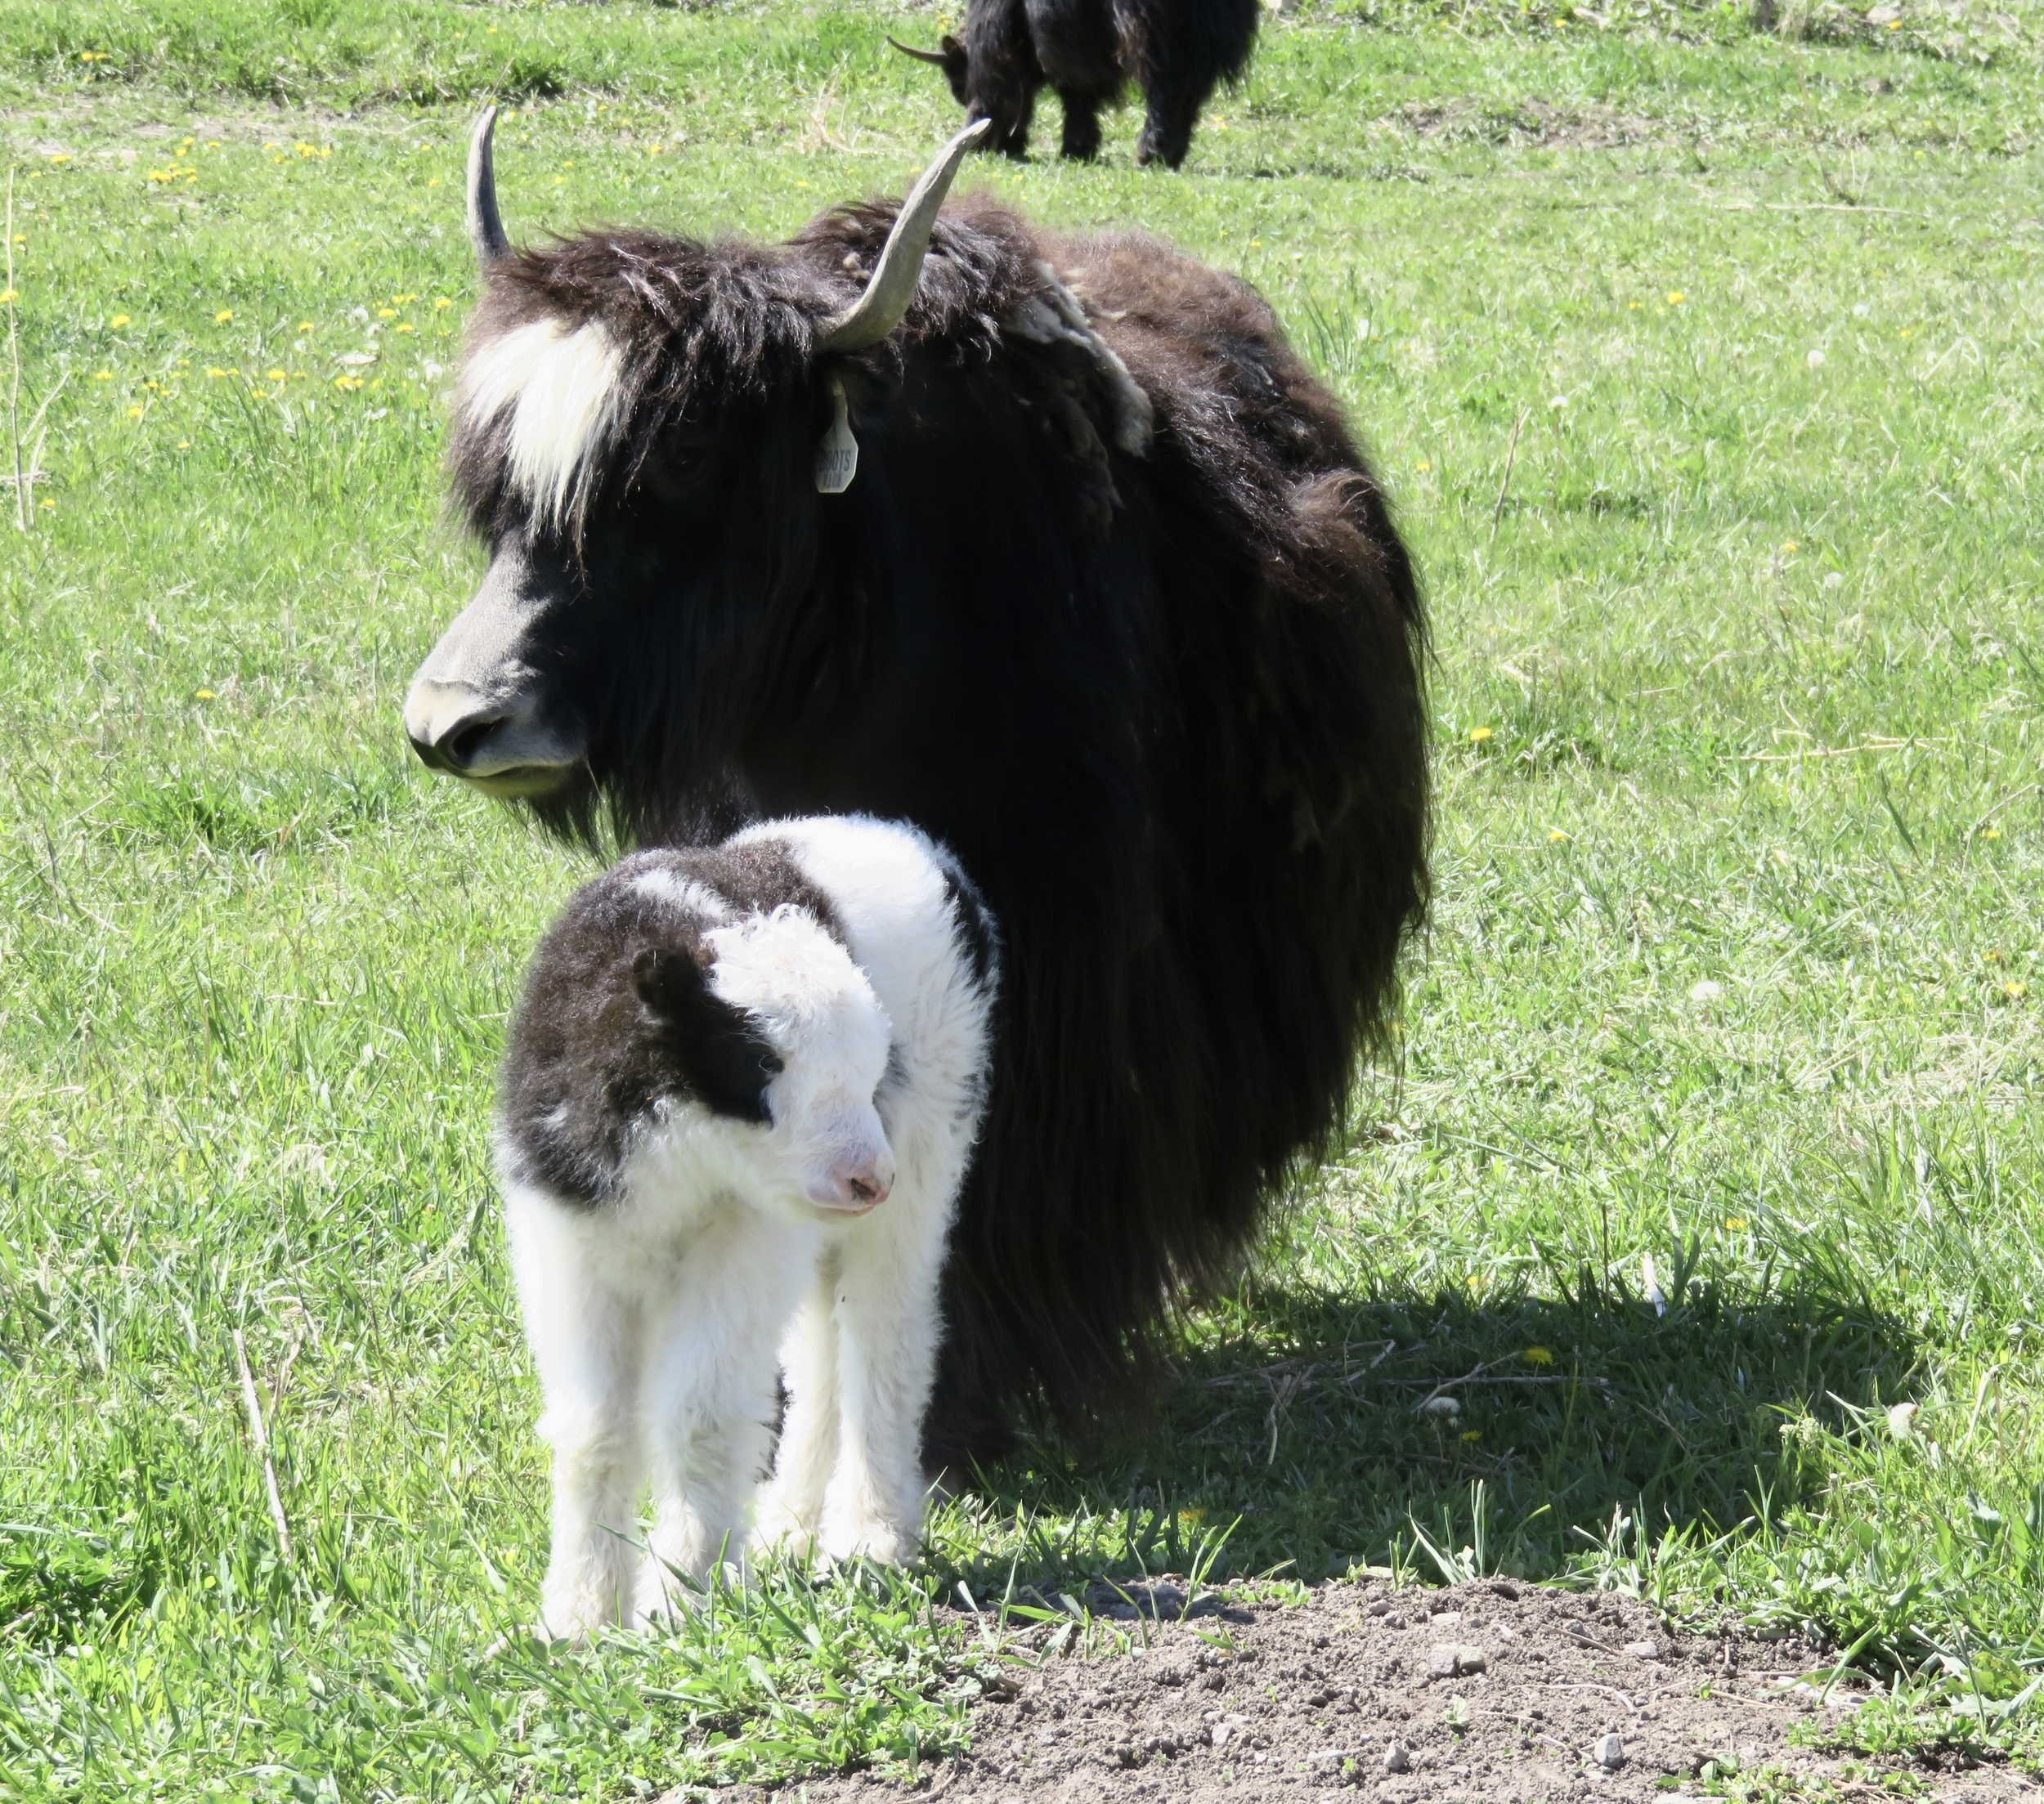 Boots and her calf Devi